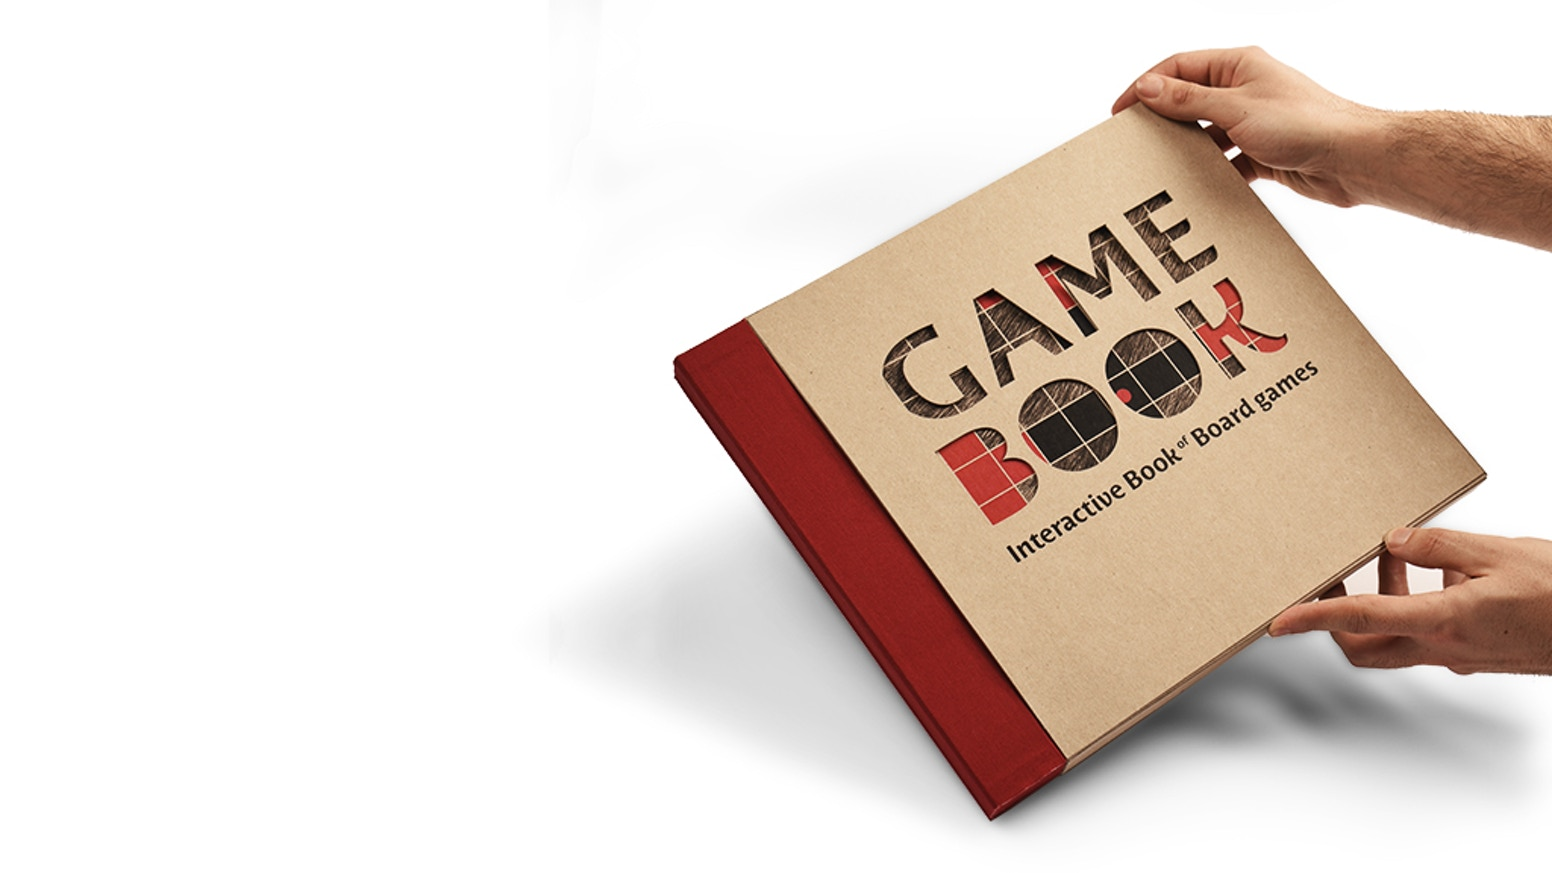 Interactive Book of Board Games is a collection of ancient abstract strategy board games designed for you to explore, play and enjoy!